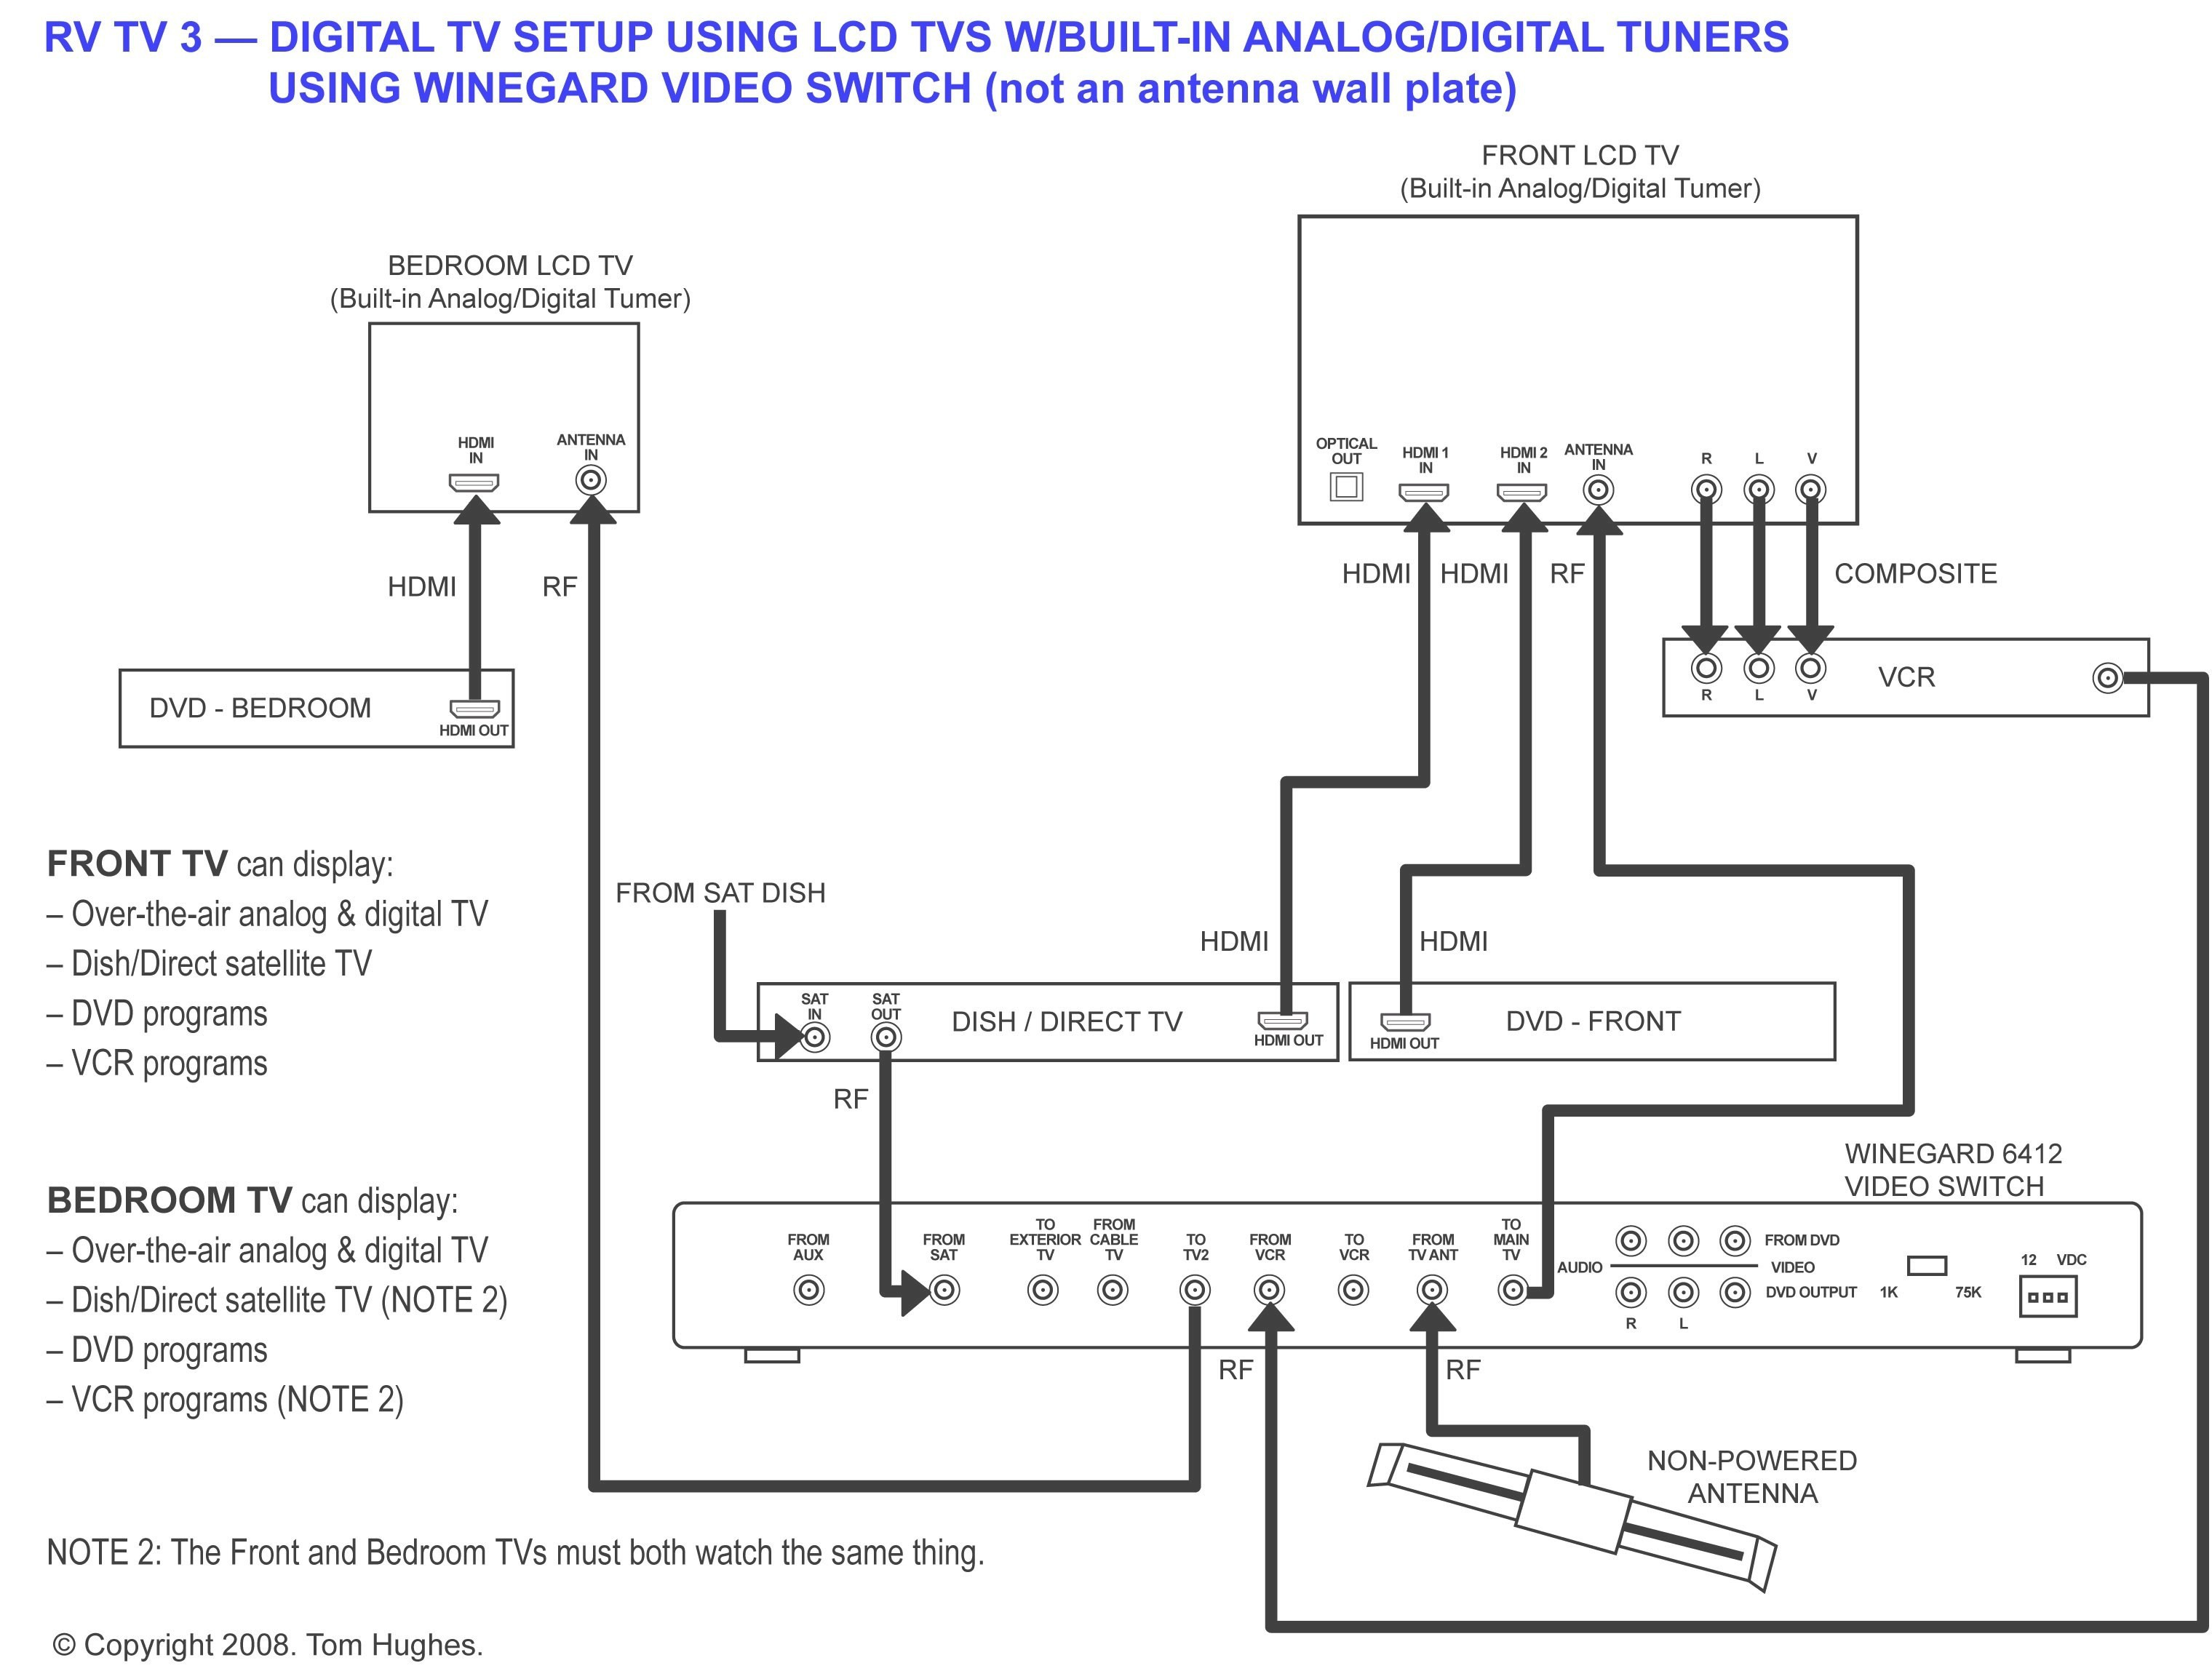 Jumper Cables Diagram Wiring Diagram for Tv In An Rv Typical Rv Wiring Diagram Wiring Of Jumper Cables Diagram